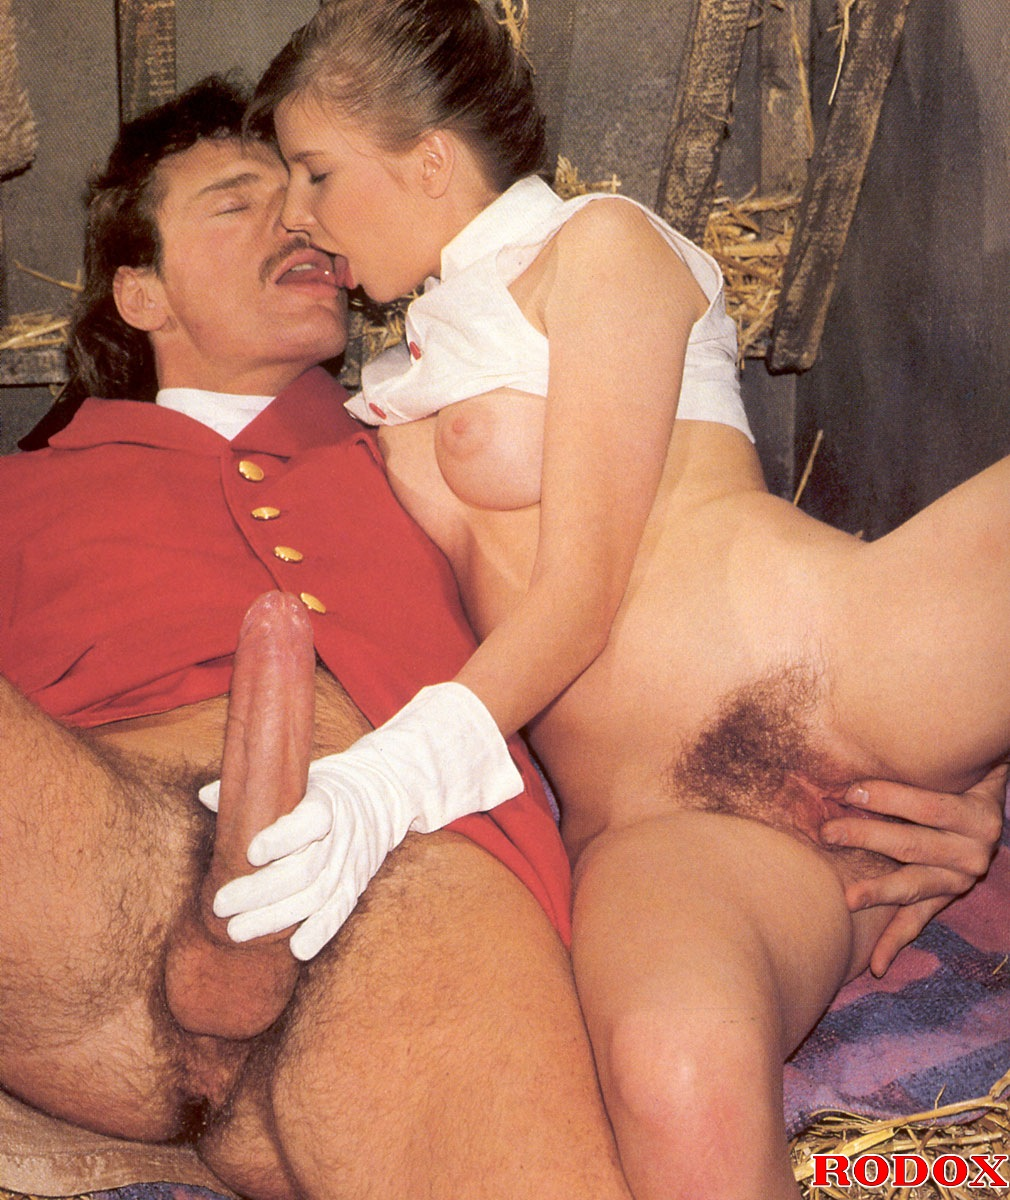 Actress Porn Hair Horse hairy nude vintage pictures sexy horse riding babe fucking